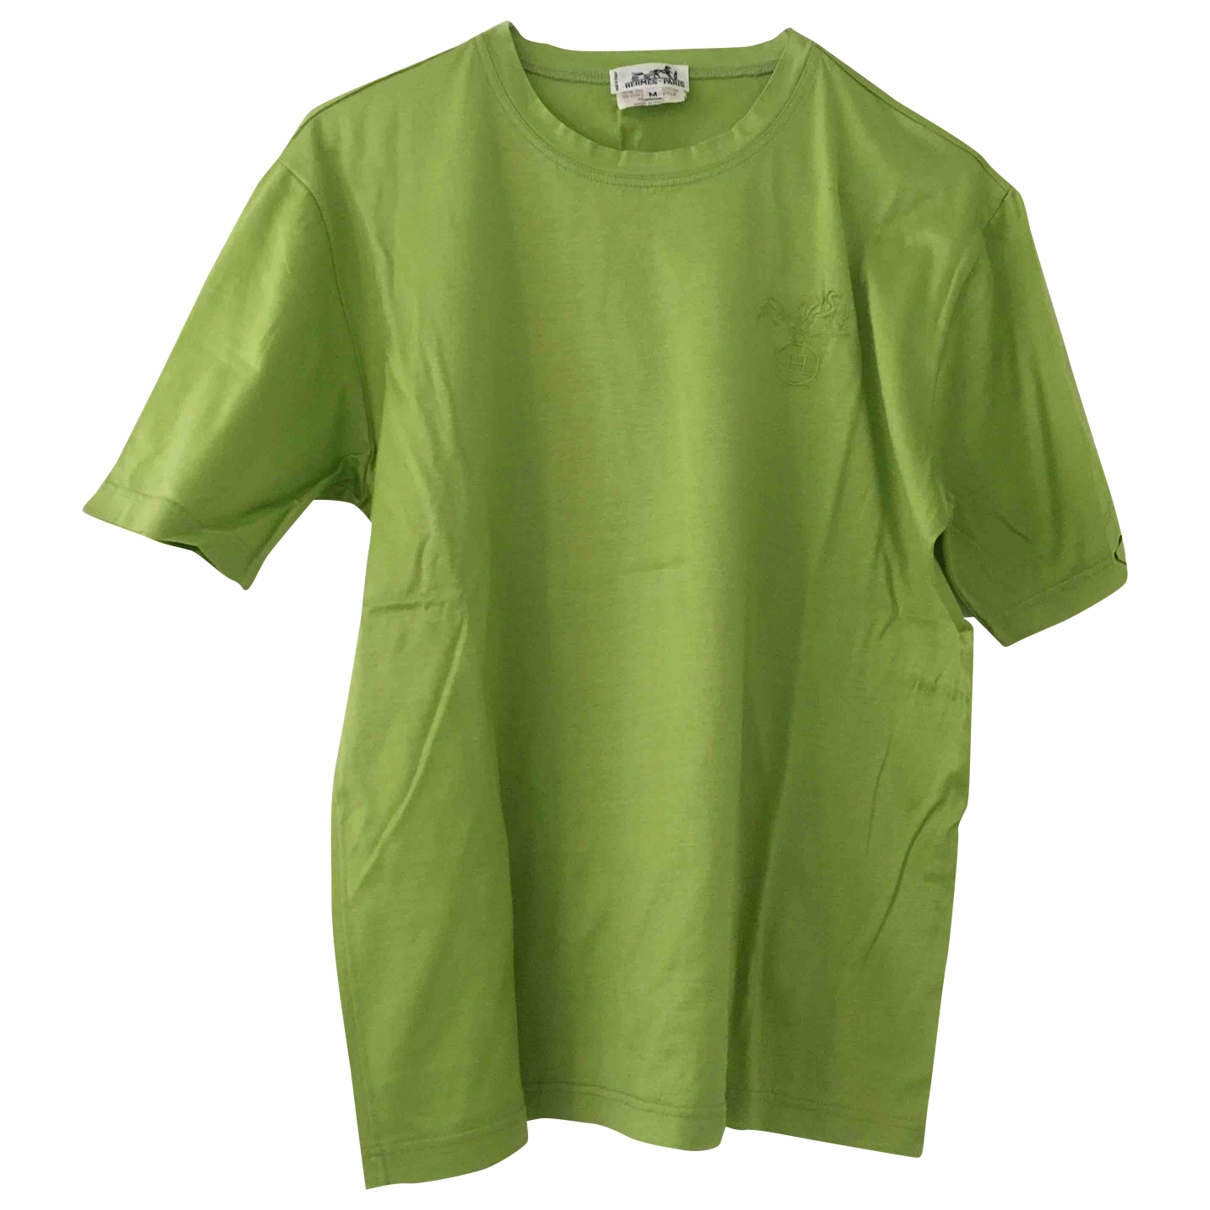 Hermès \N Green Cotton  top for Women M International